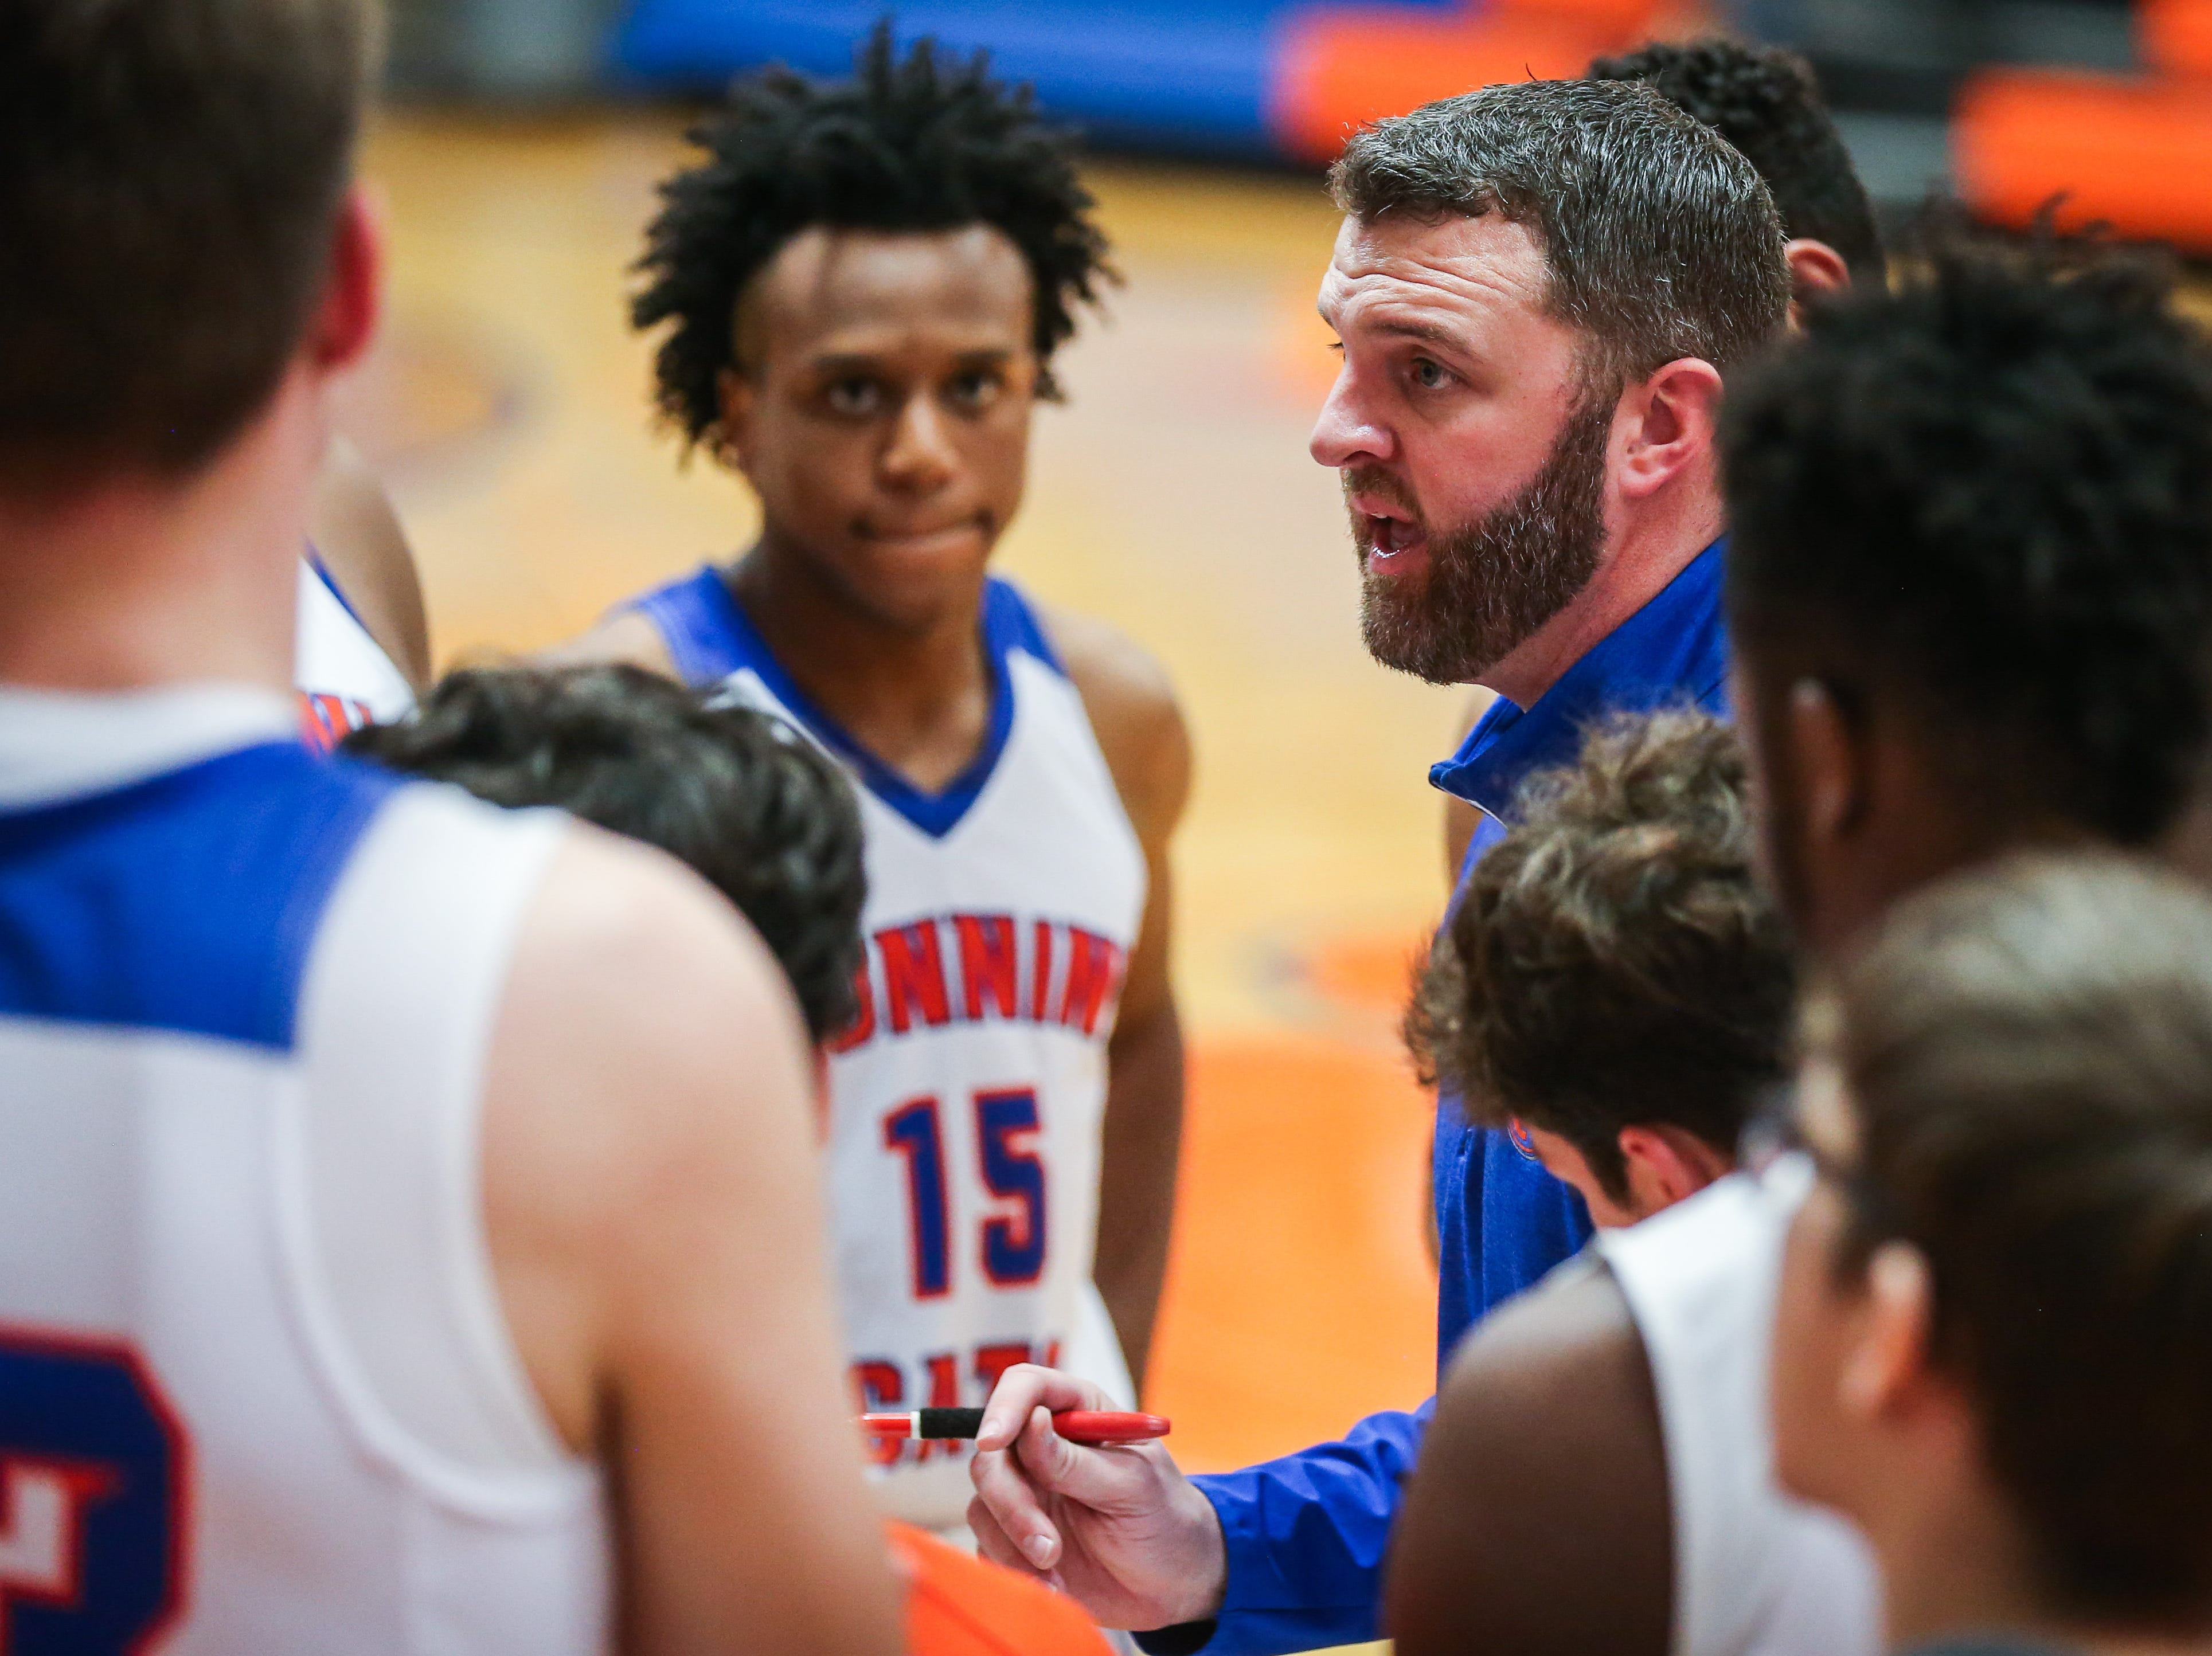 Central coach talks to the team during the Doug McCutchen Basketball Tournament Thursday, Nov. 29, 2018, at Central High School.